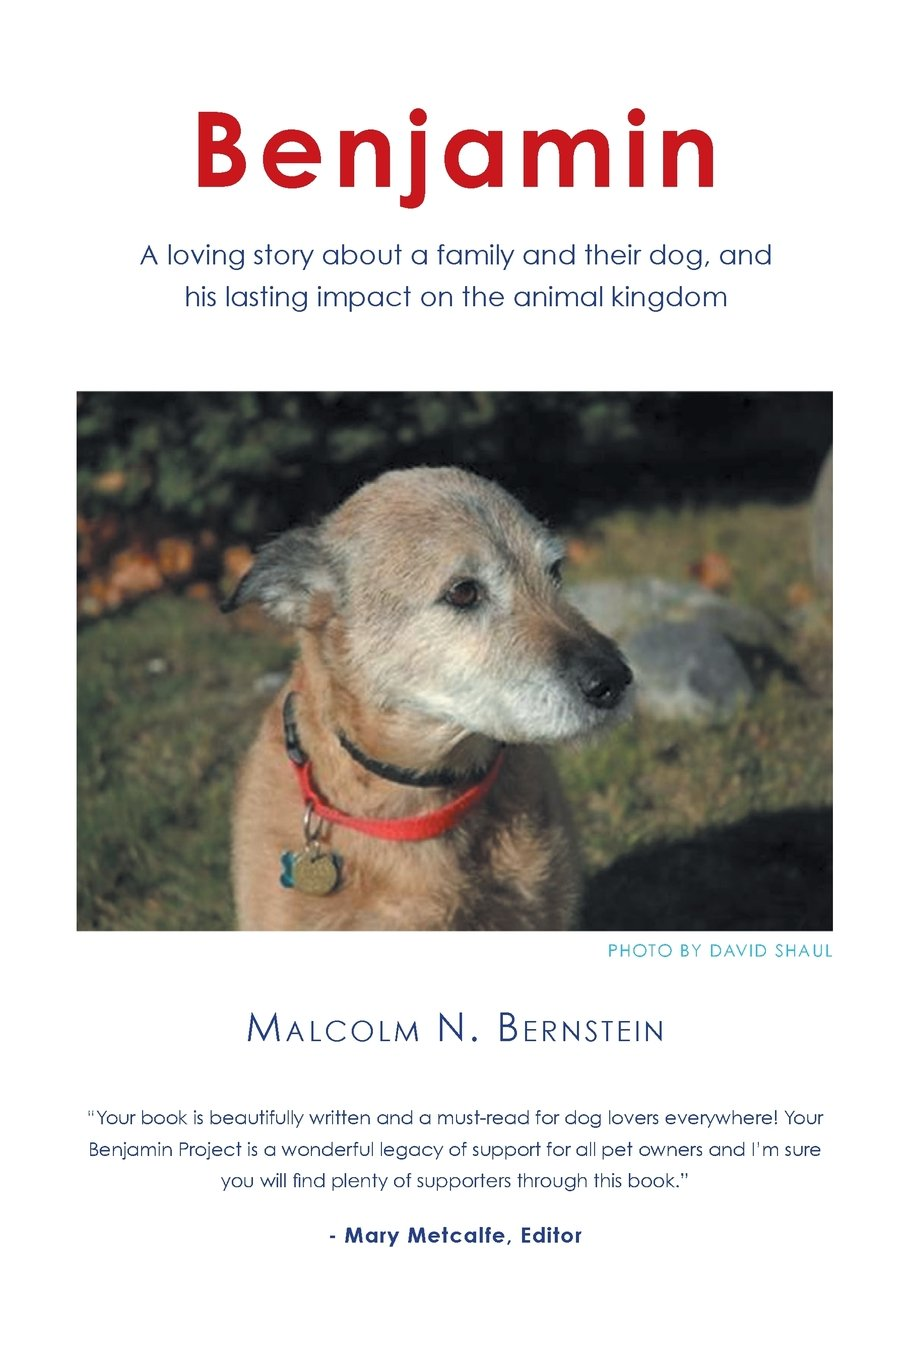 Benjamin: A loving story about a family and their dog and his lasting impact on the animal kingdom